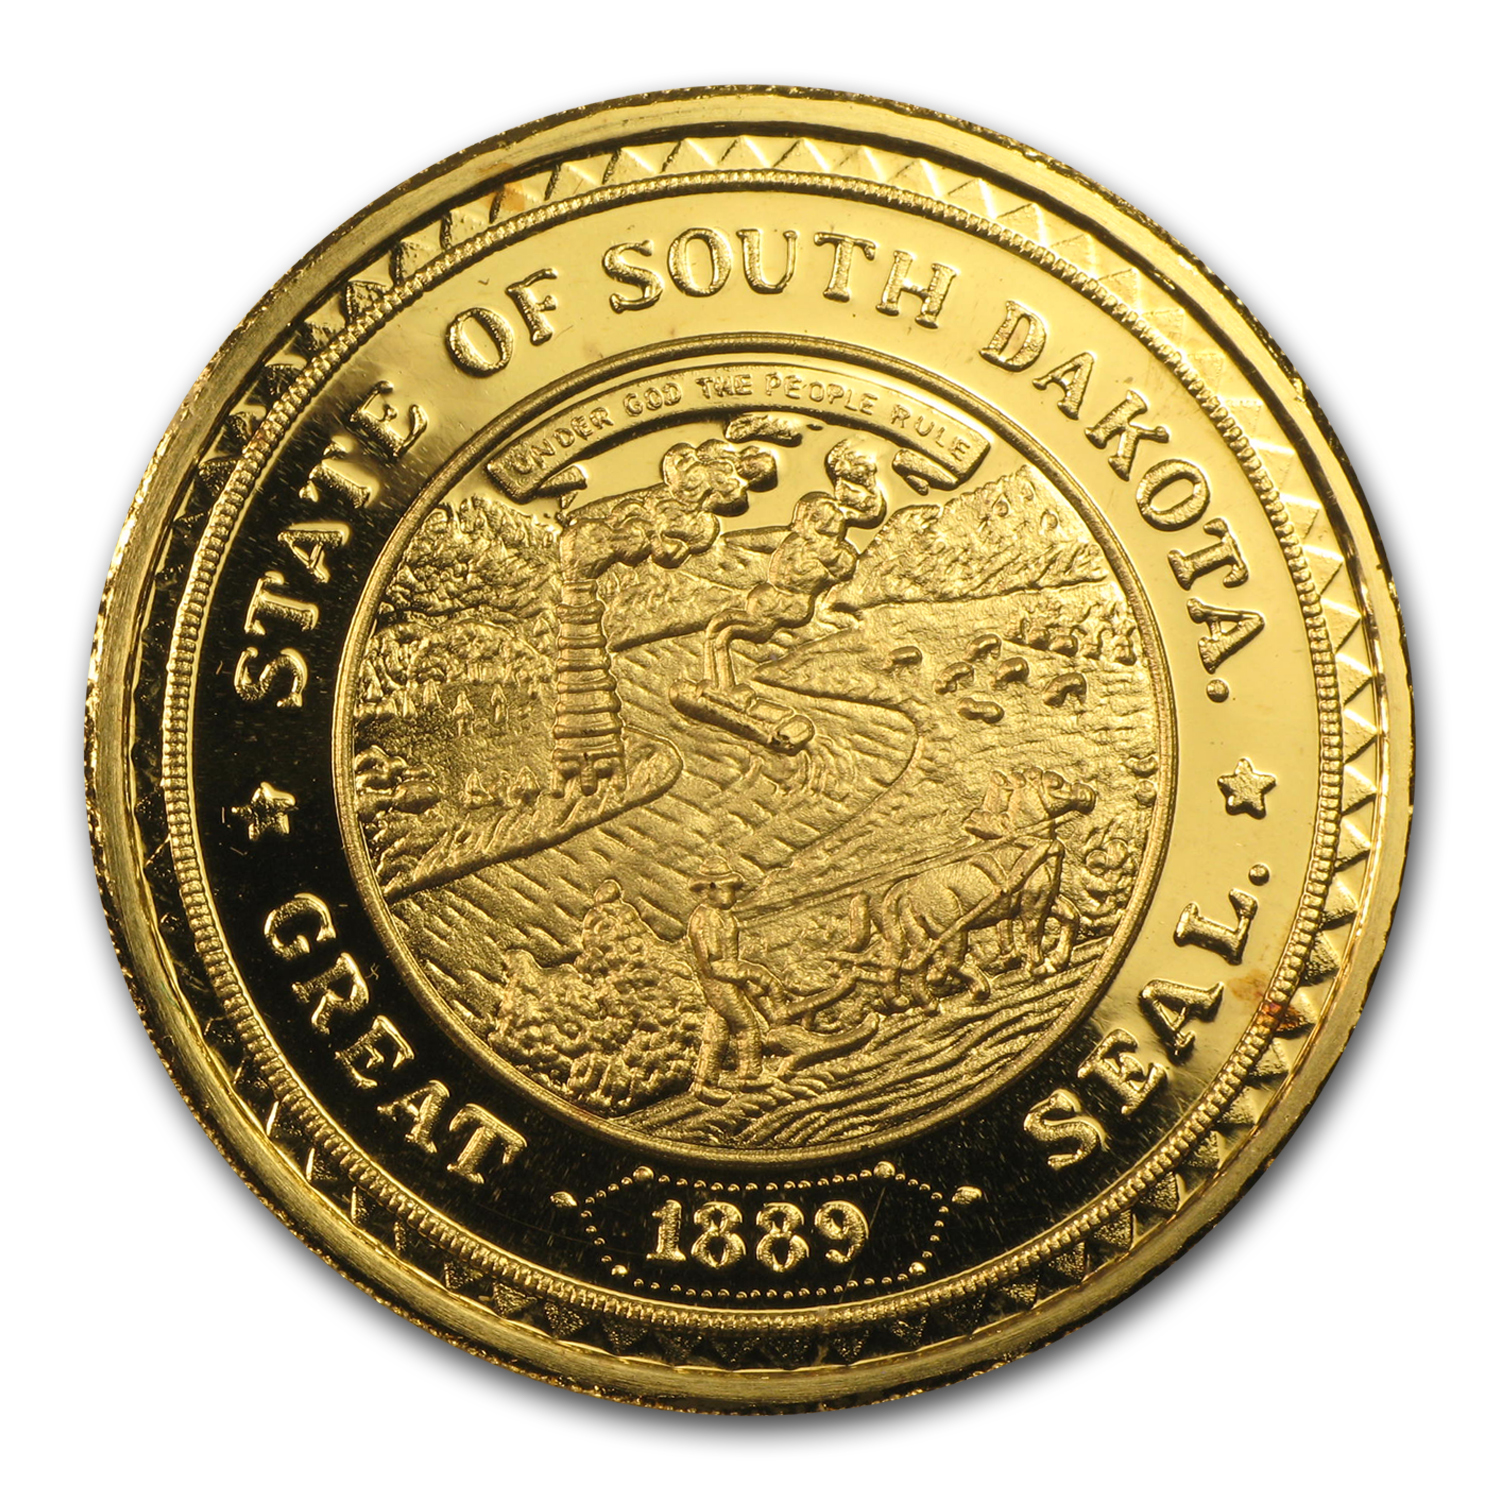 1 oz Gold Round - Great Seal of South Dakota